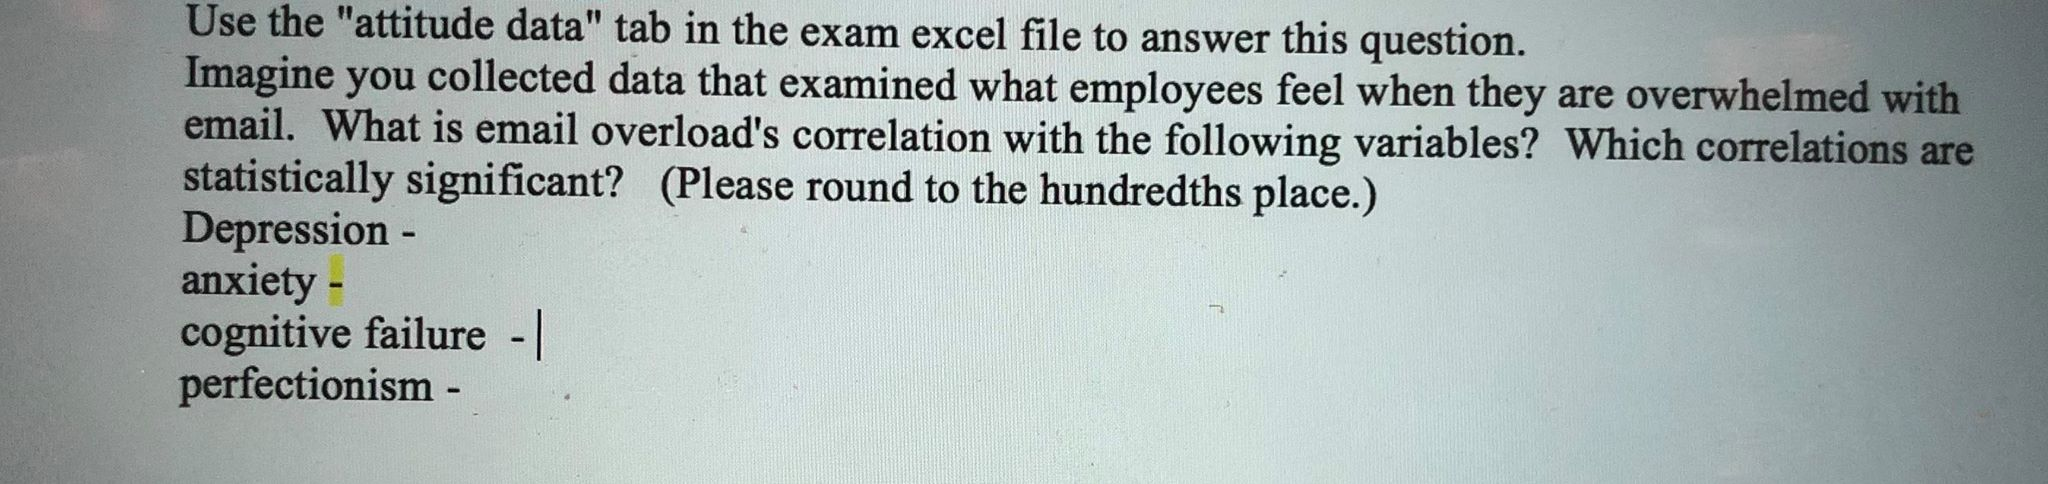 "Use the ""attitude data"" tab in the exam excel file to answer this question. Imagine you collected data that examined what employees feel when they are overwhelmed with email. What is email overload's correlation with the following variables? Which correlations are statistically signi ficant? (Please round to the hundredths place.) Depression - anxiety - cognitive failure - perfectionism -"